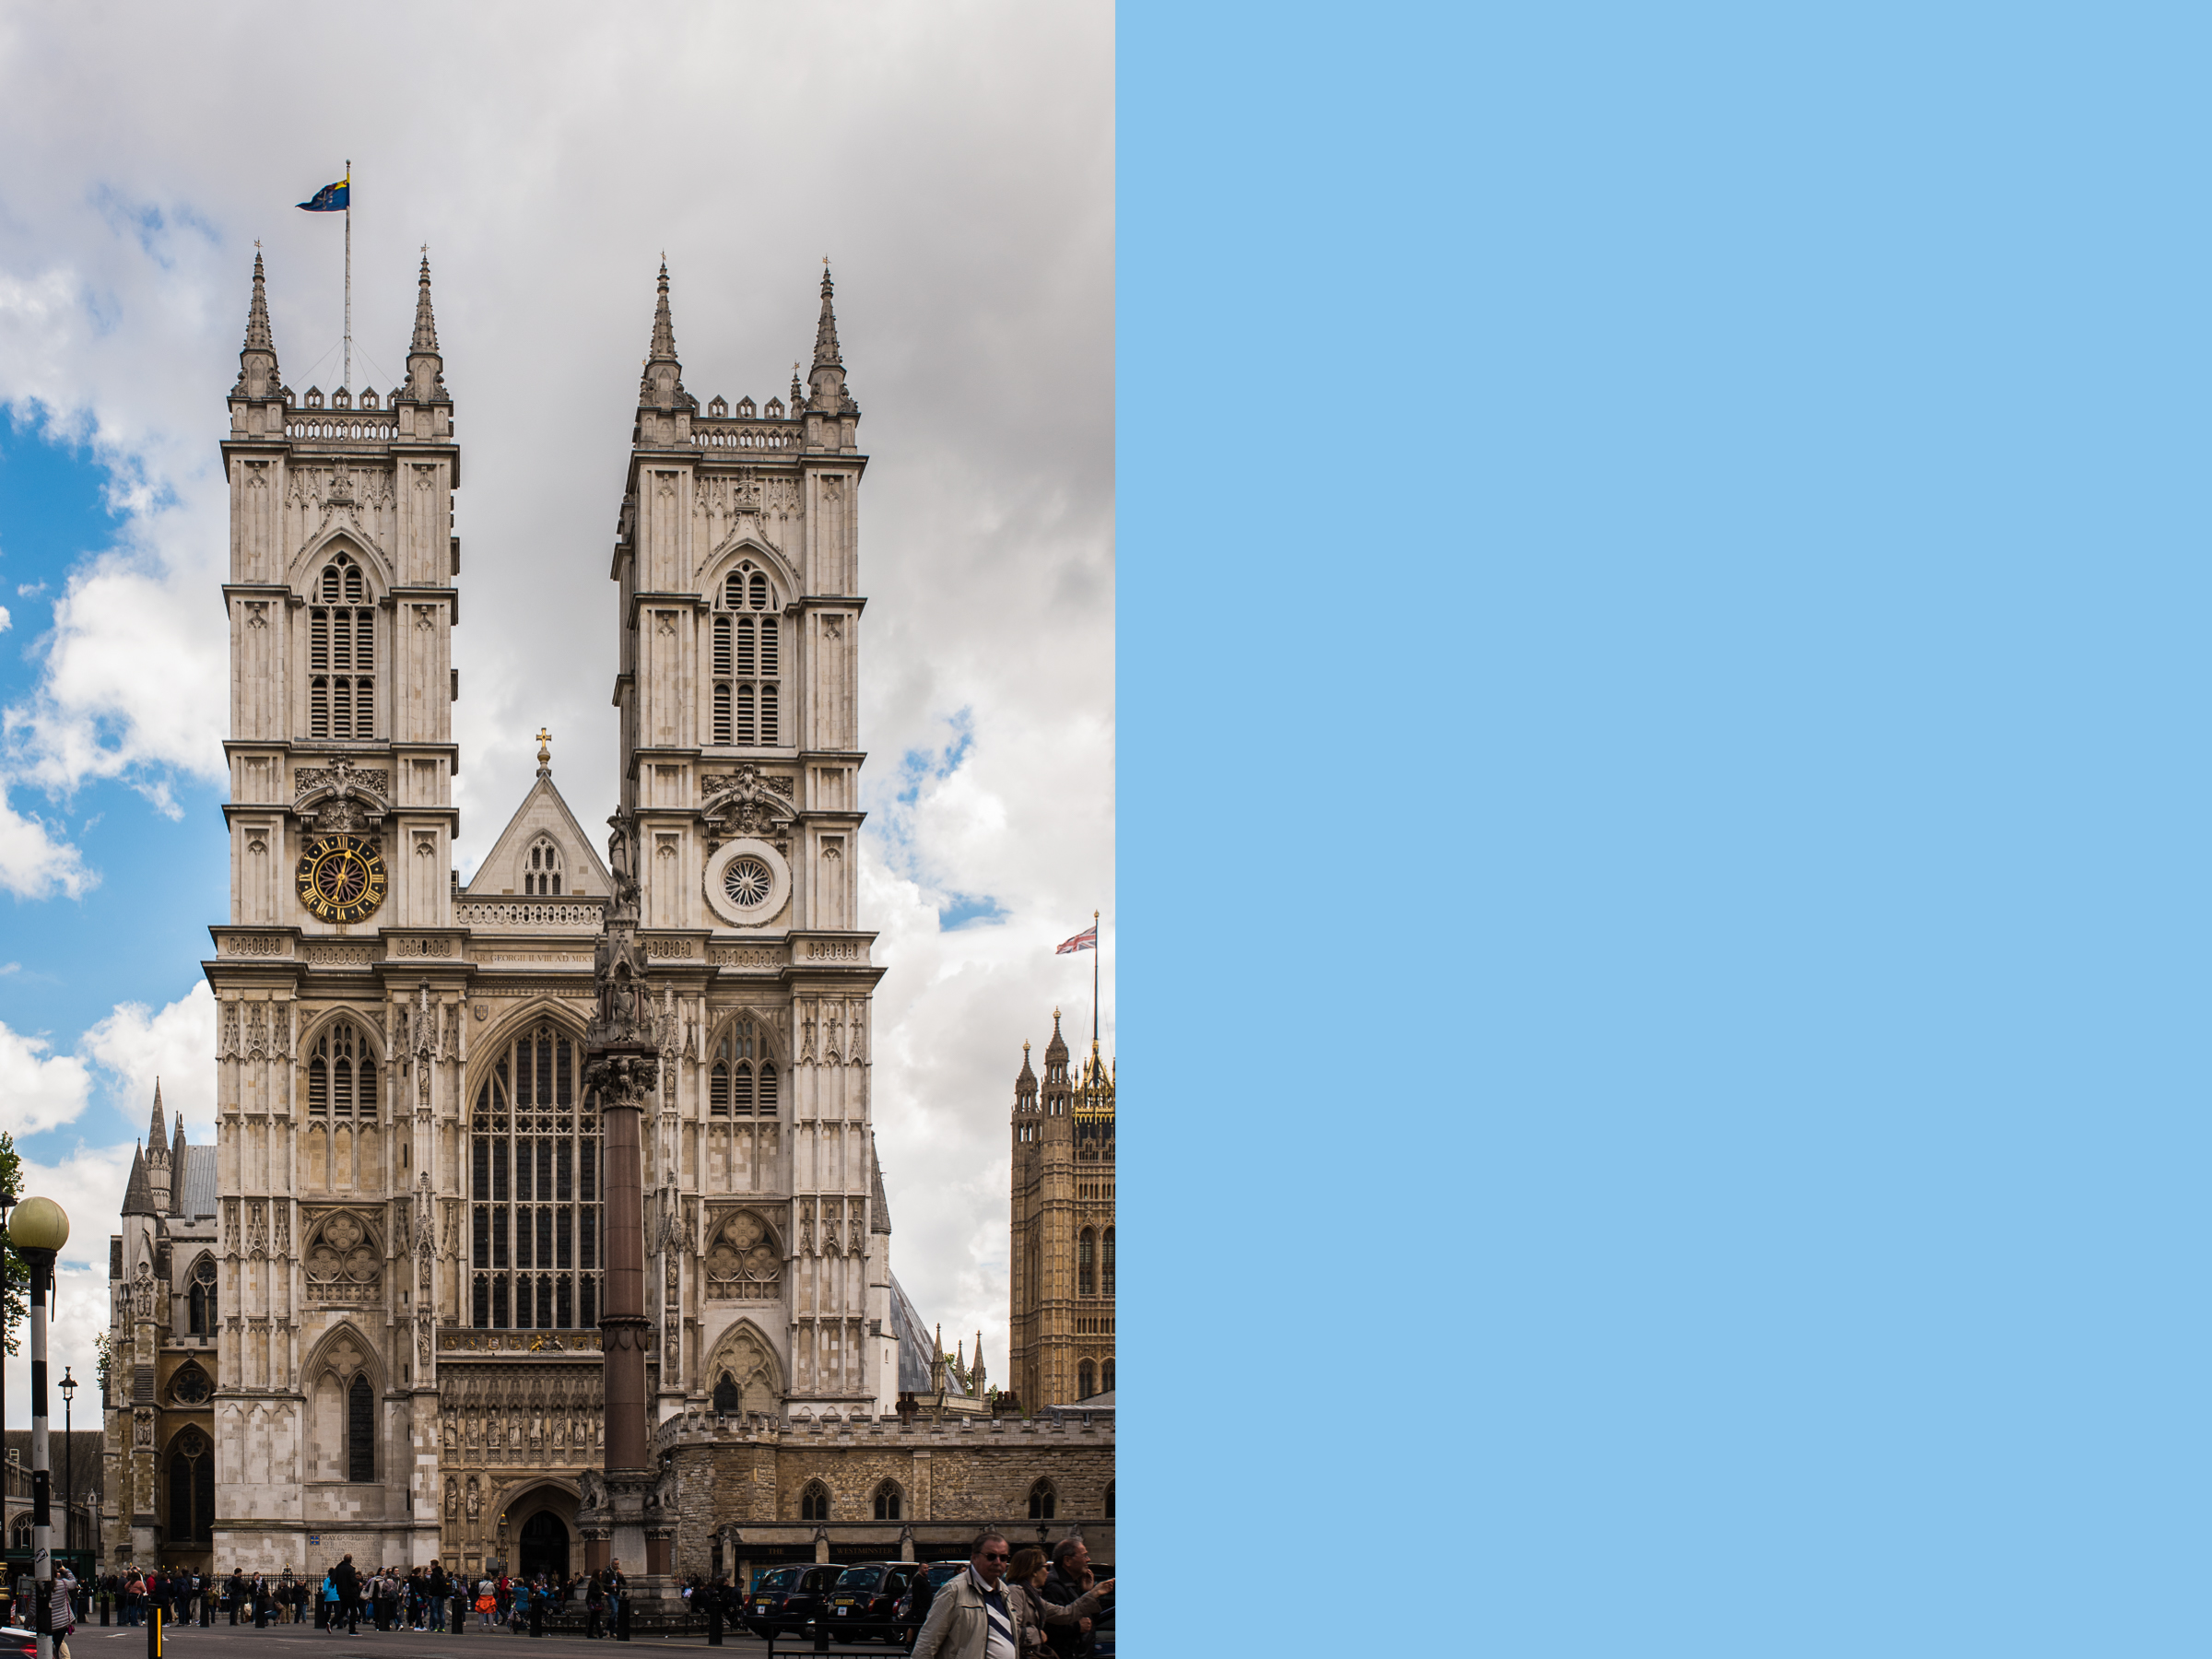 First official stop:  Westminster Abbey